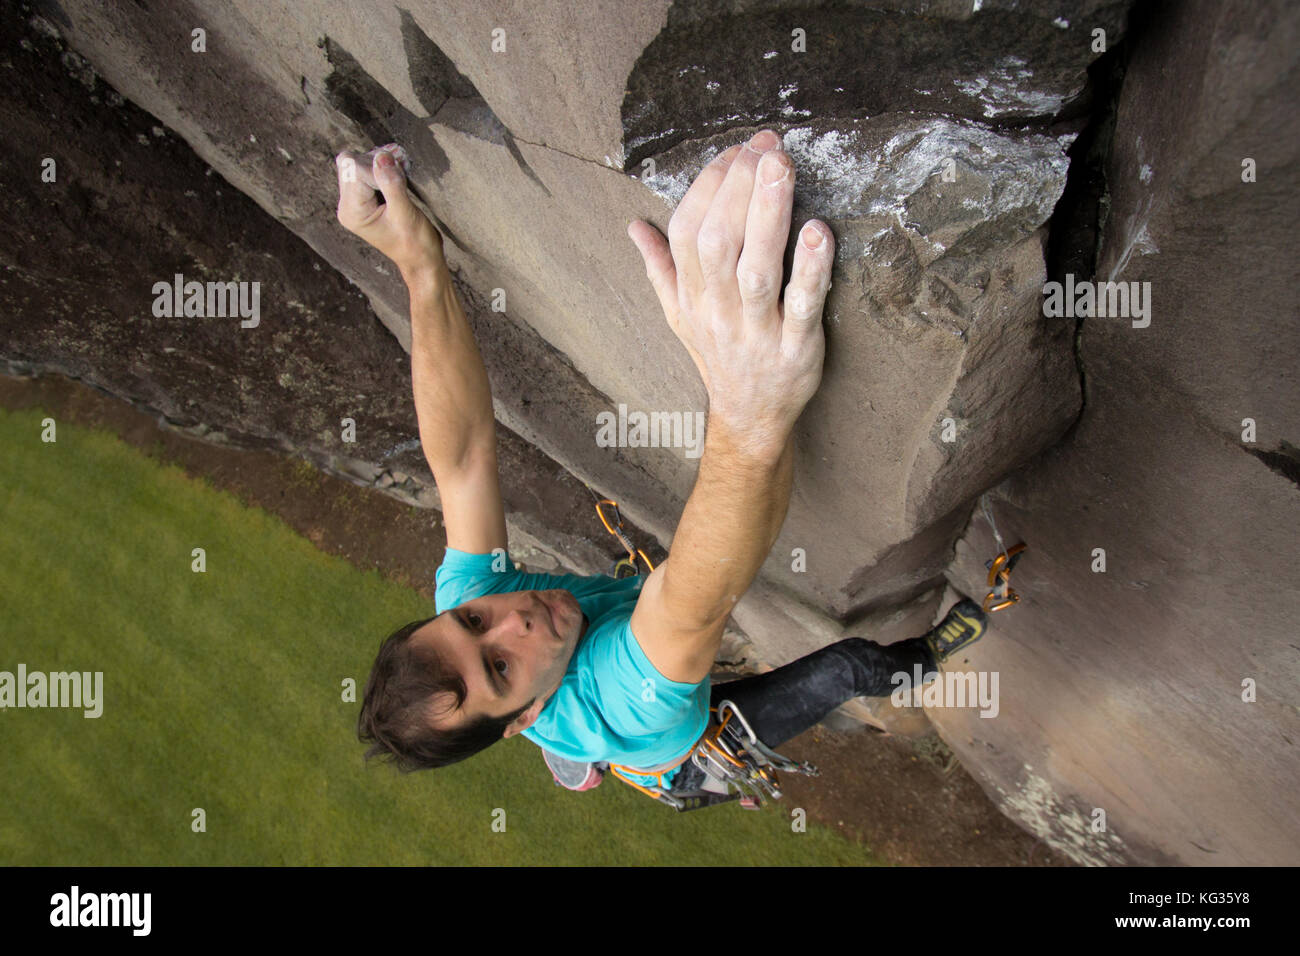 James Field-Mitchell topping out on 'Wendy Kroy', grade 26, Mt Eden Quarry, Auckland. - Stock Image